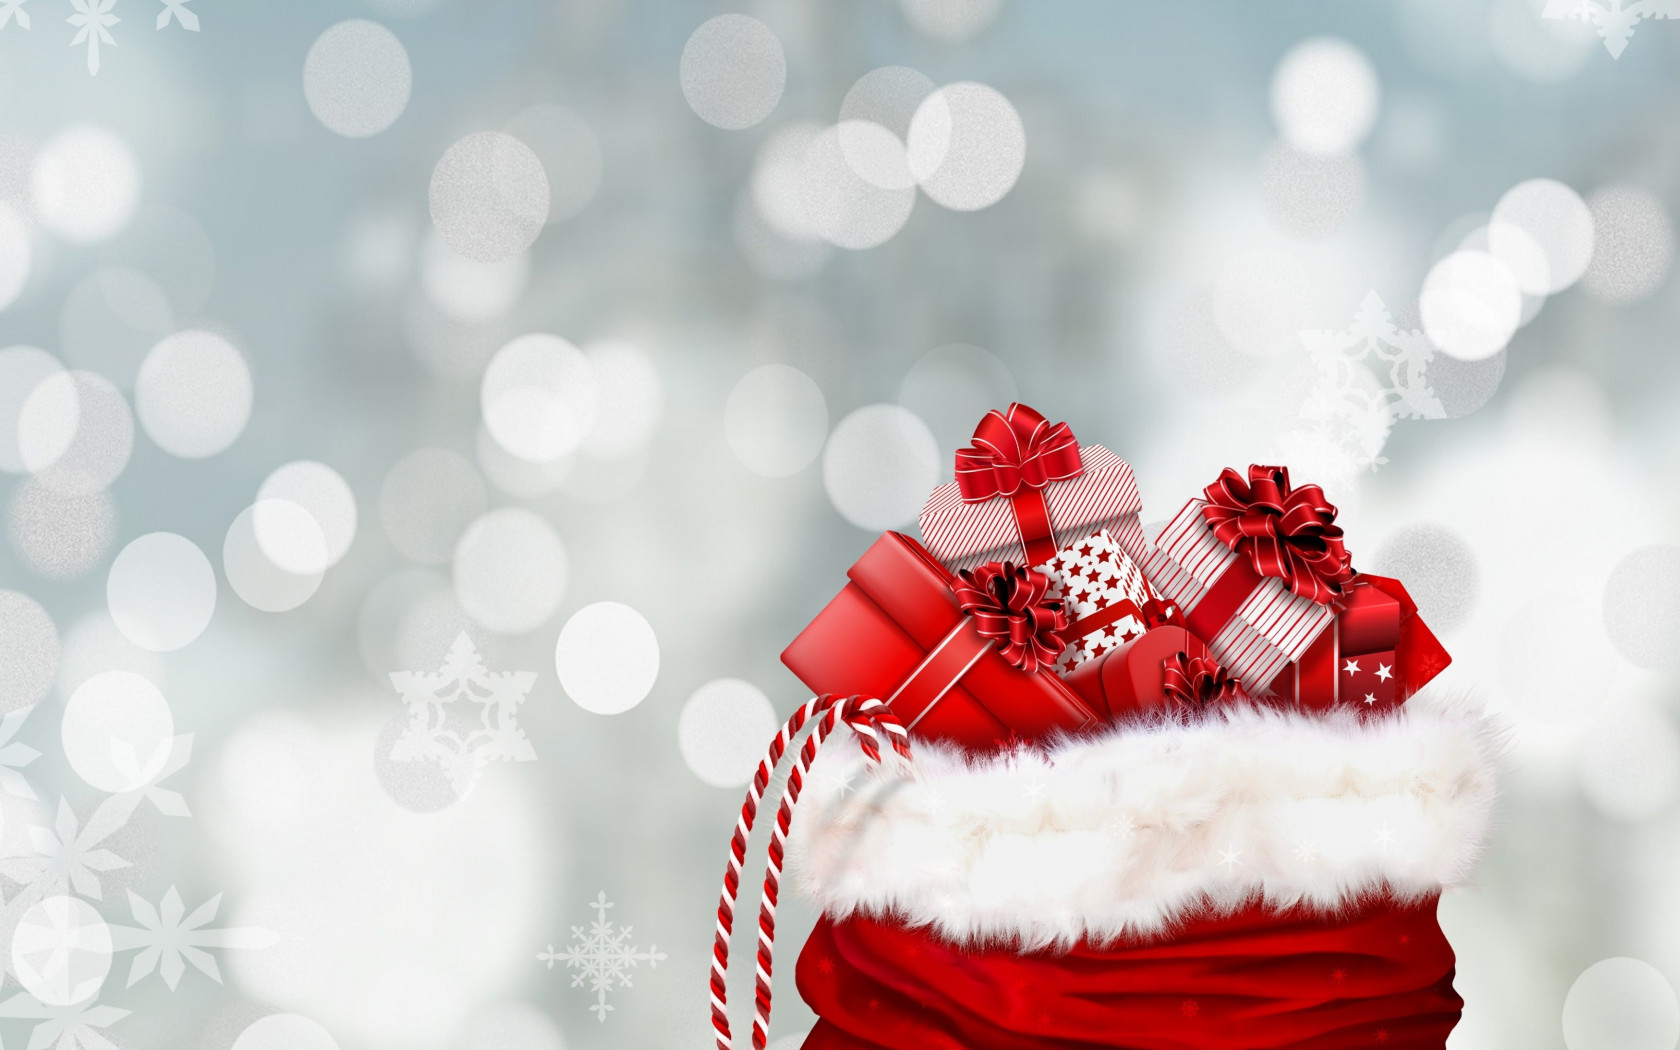 Bag with Christmas gifts wallpaper 1680x1050